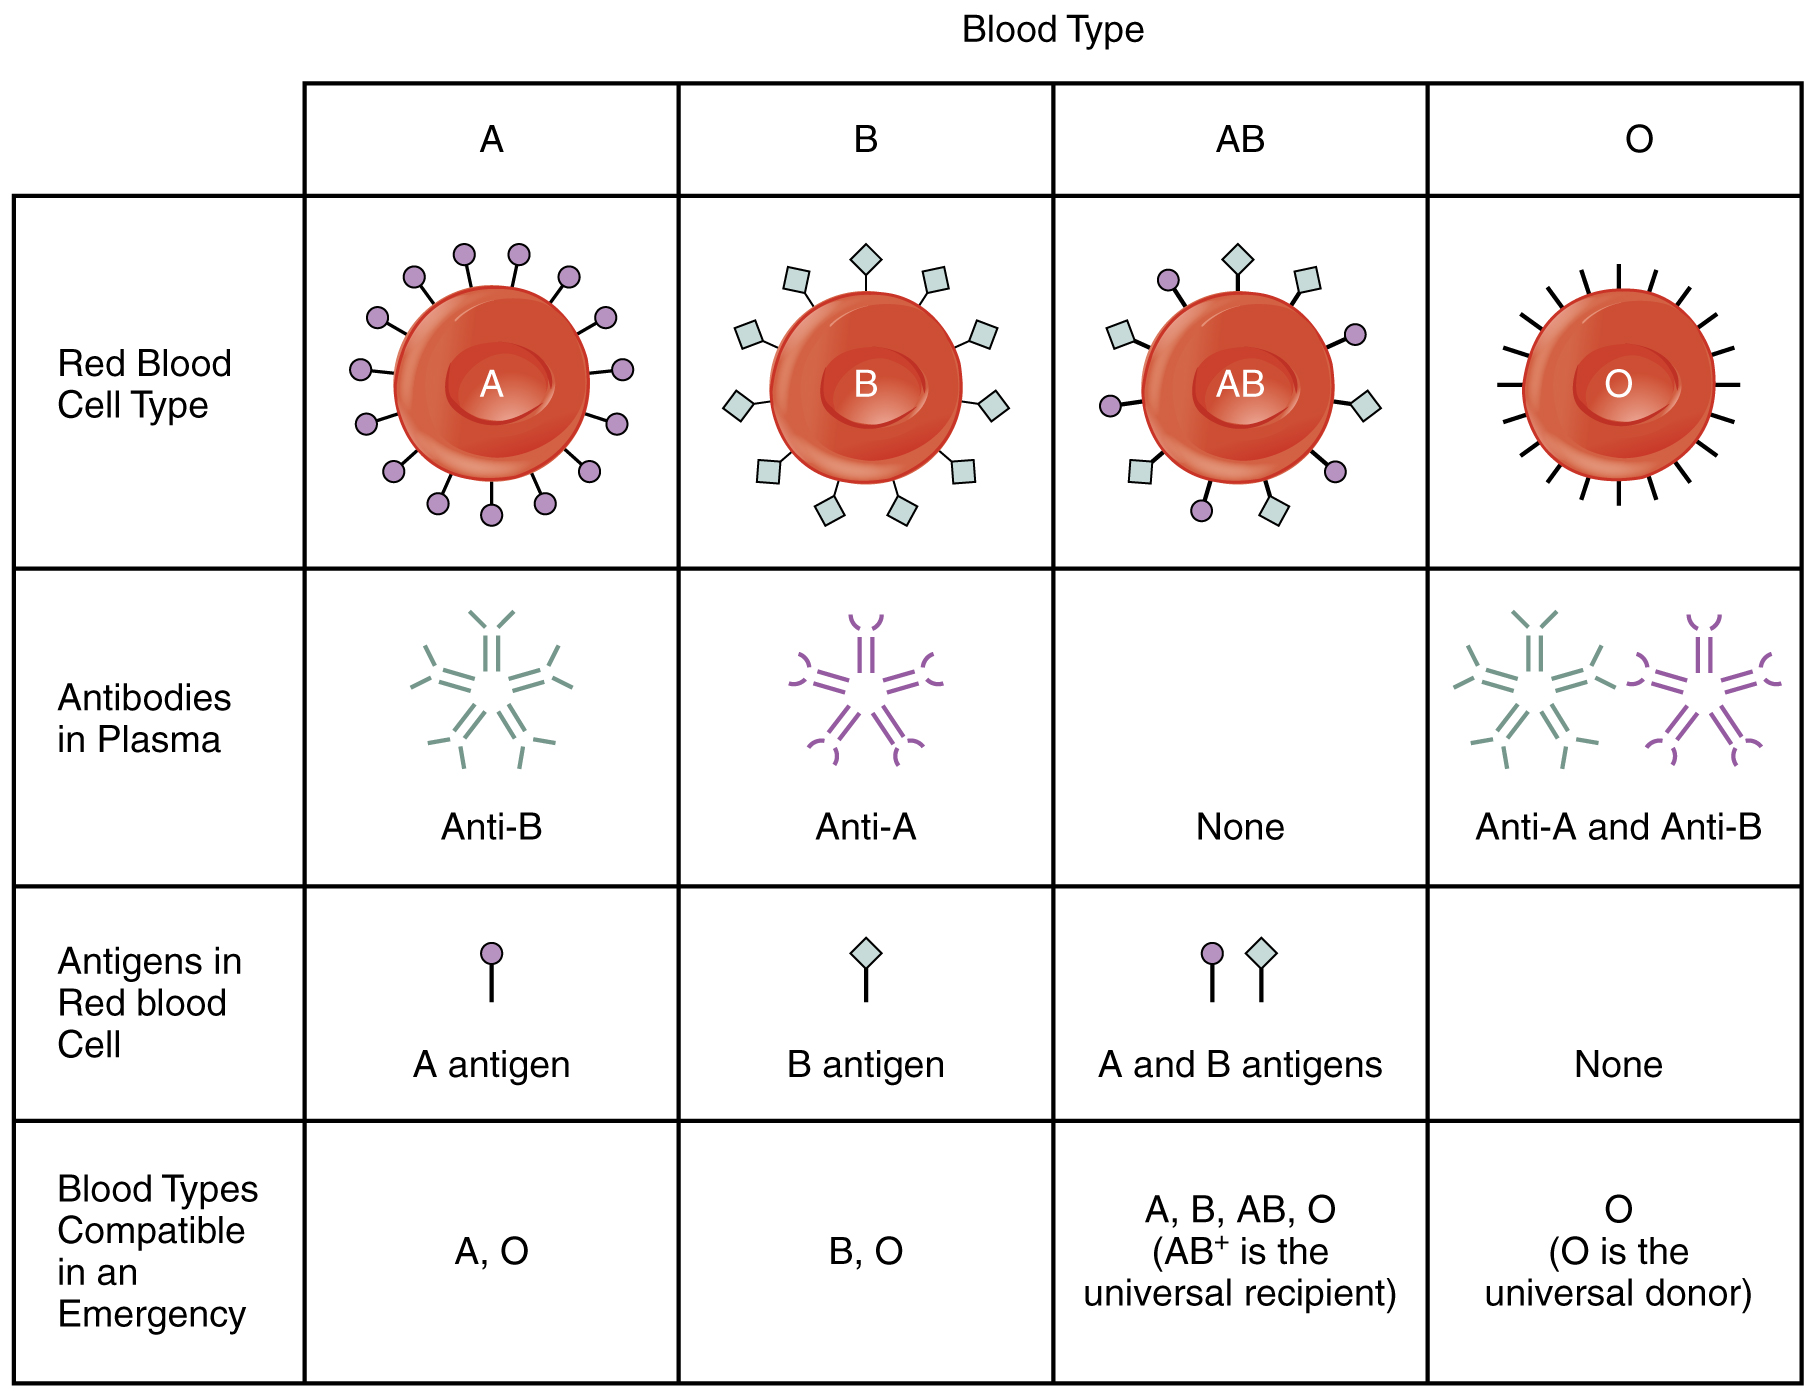 This table shows the different blood types, the antibodies in plasma, the antigens in the red blood cell, and the blood compatible blood types in an emergency.